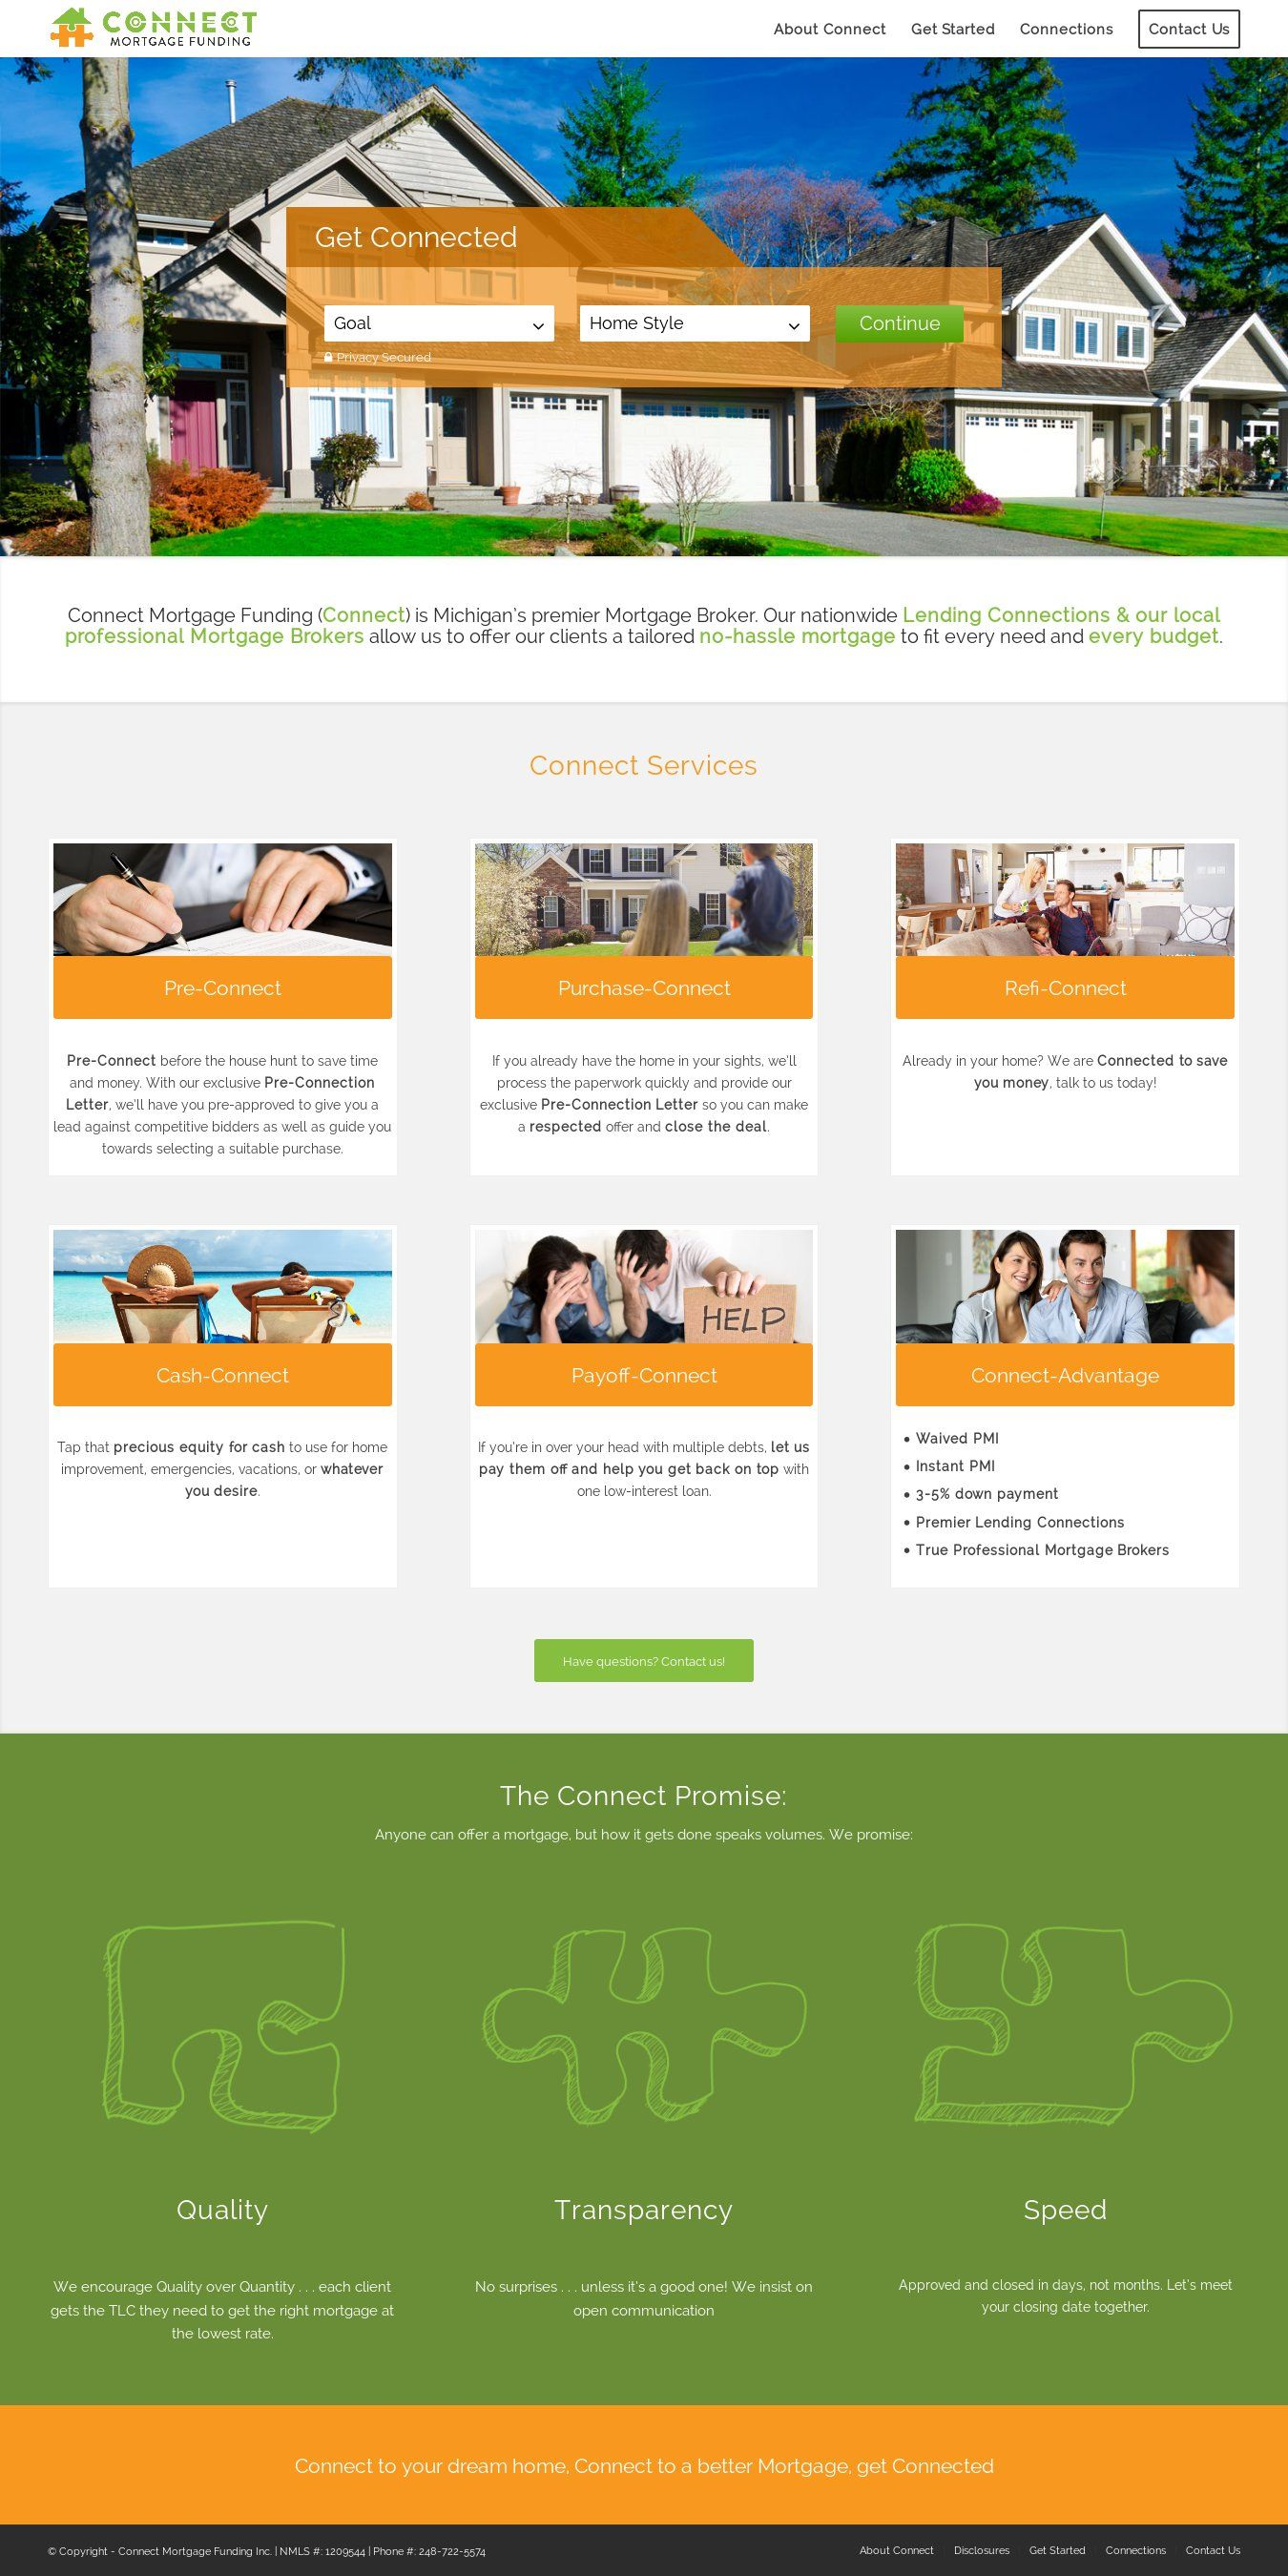 WordPress site connectloans.com uses the Wordpress template Enfold ...